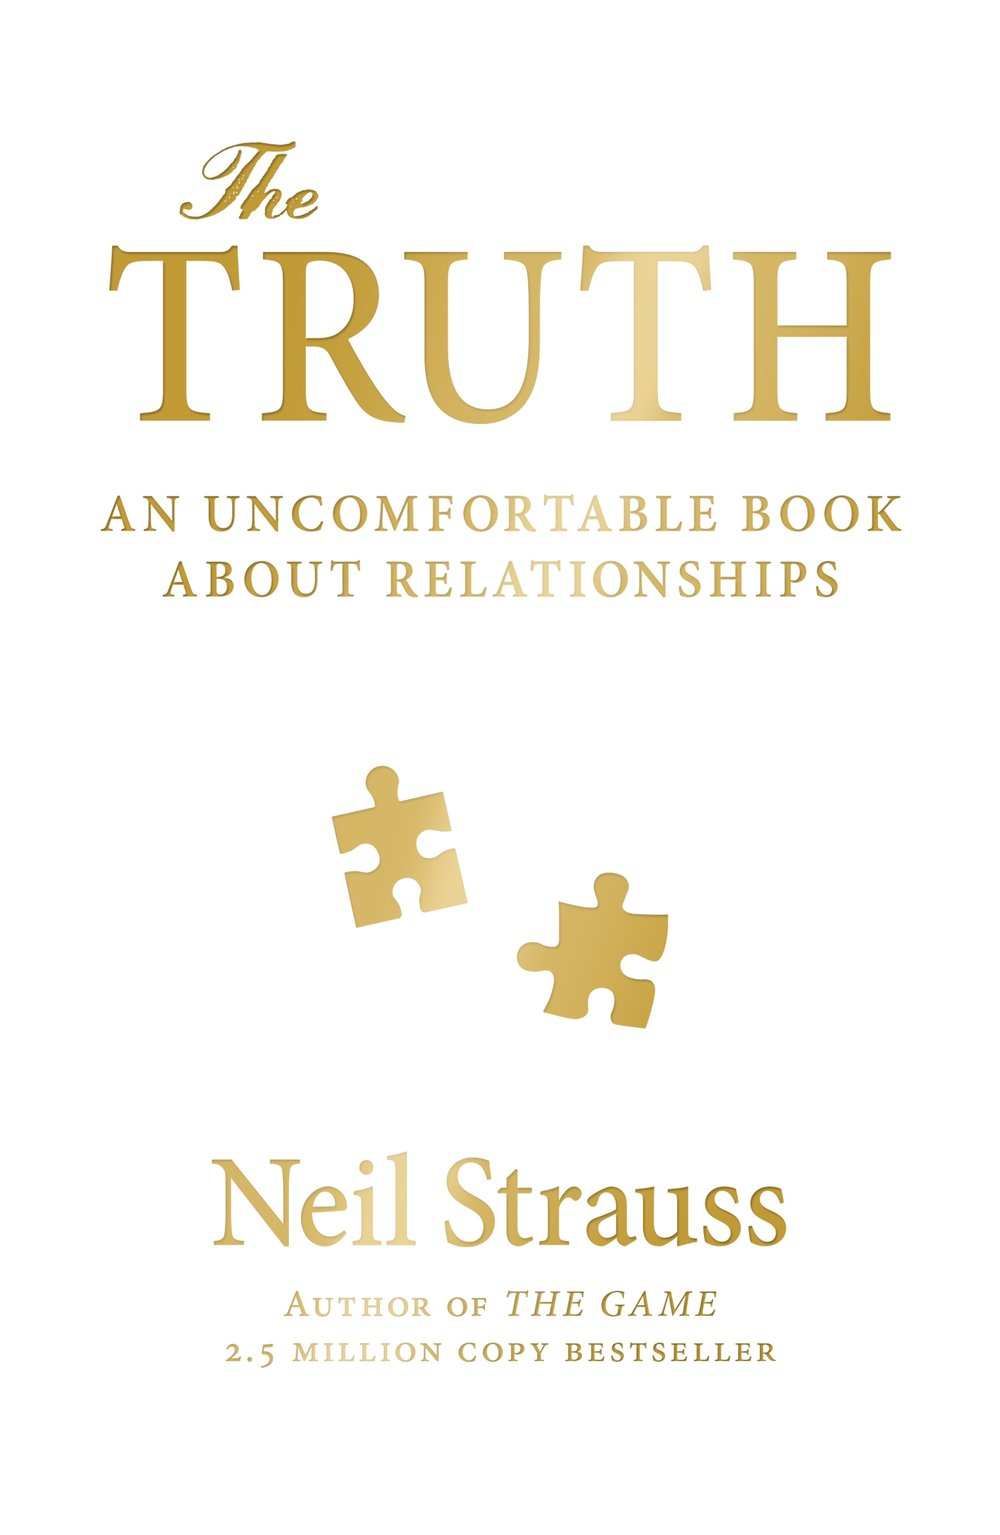 the-truth-neil-strauss-book-cover.jpg